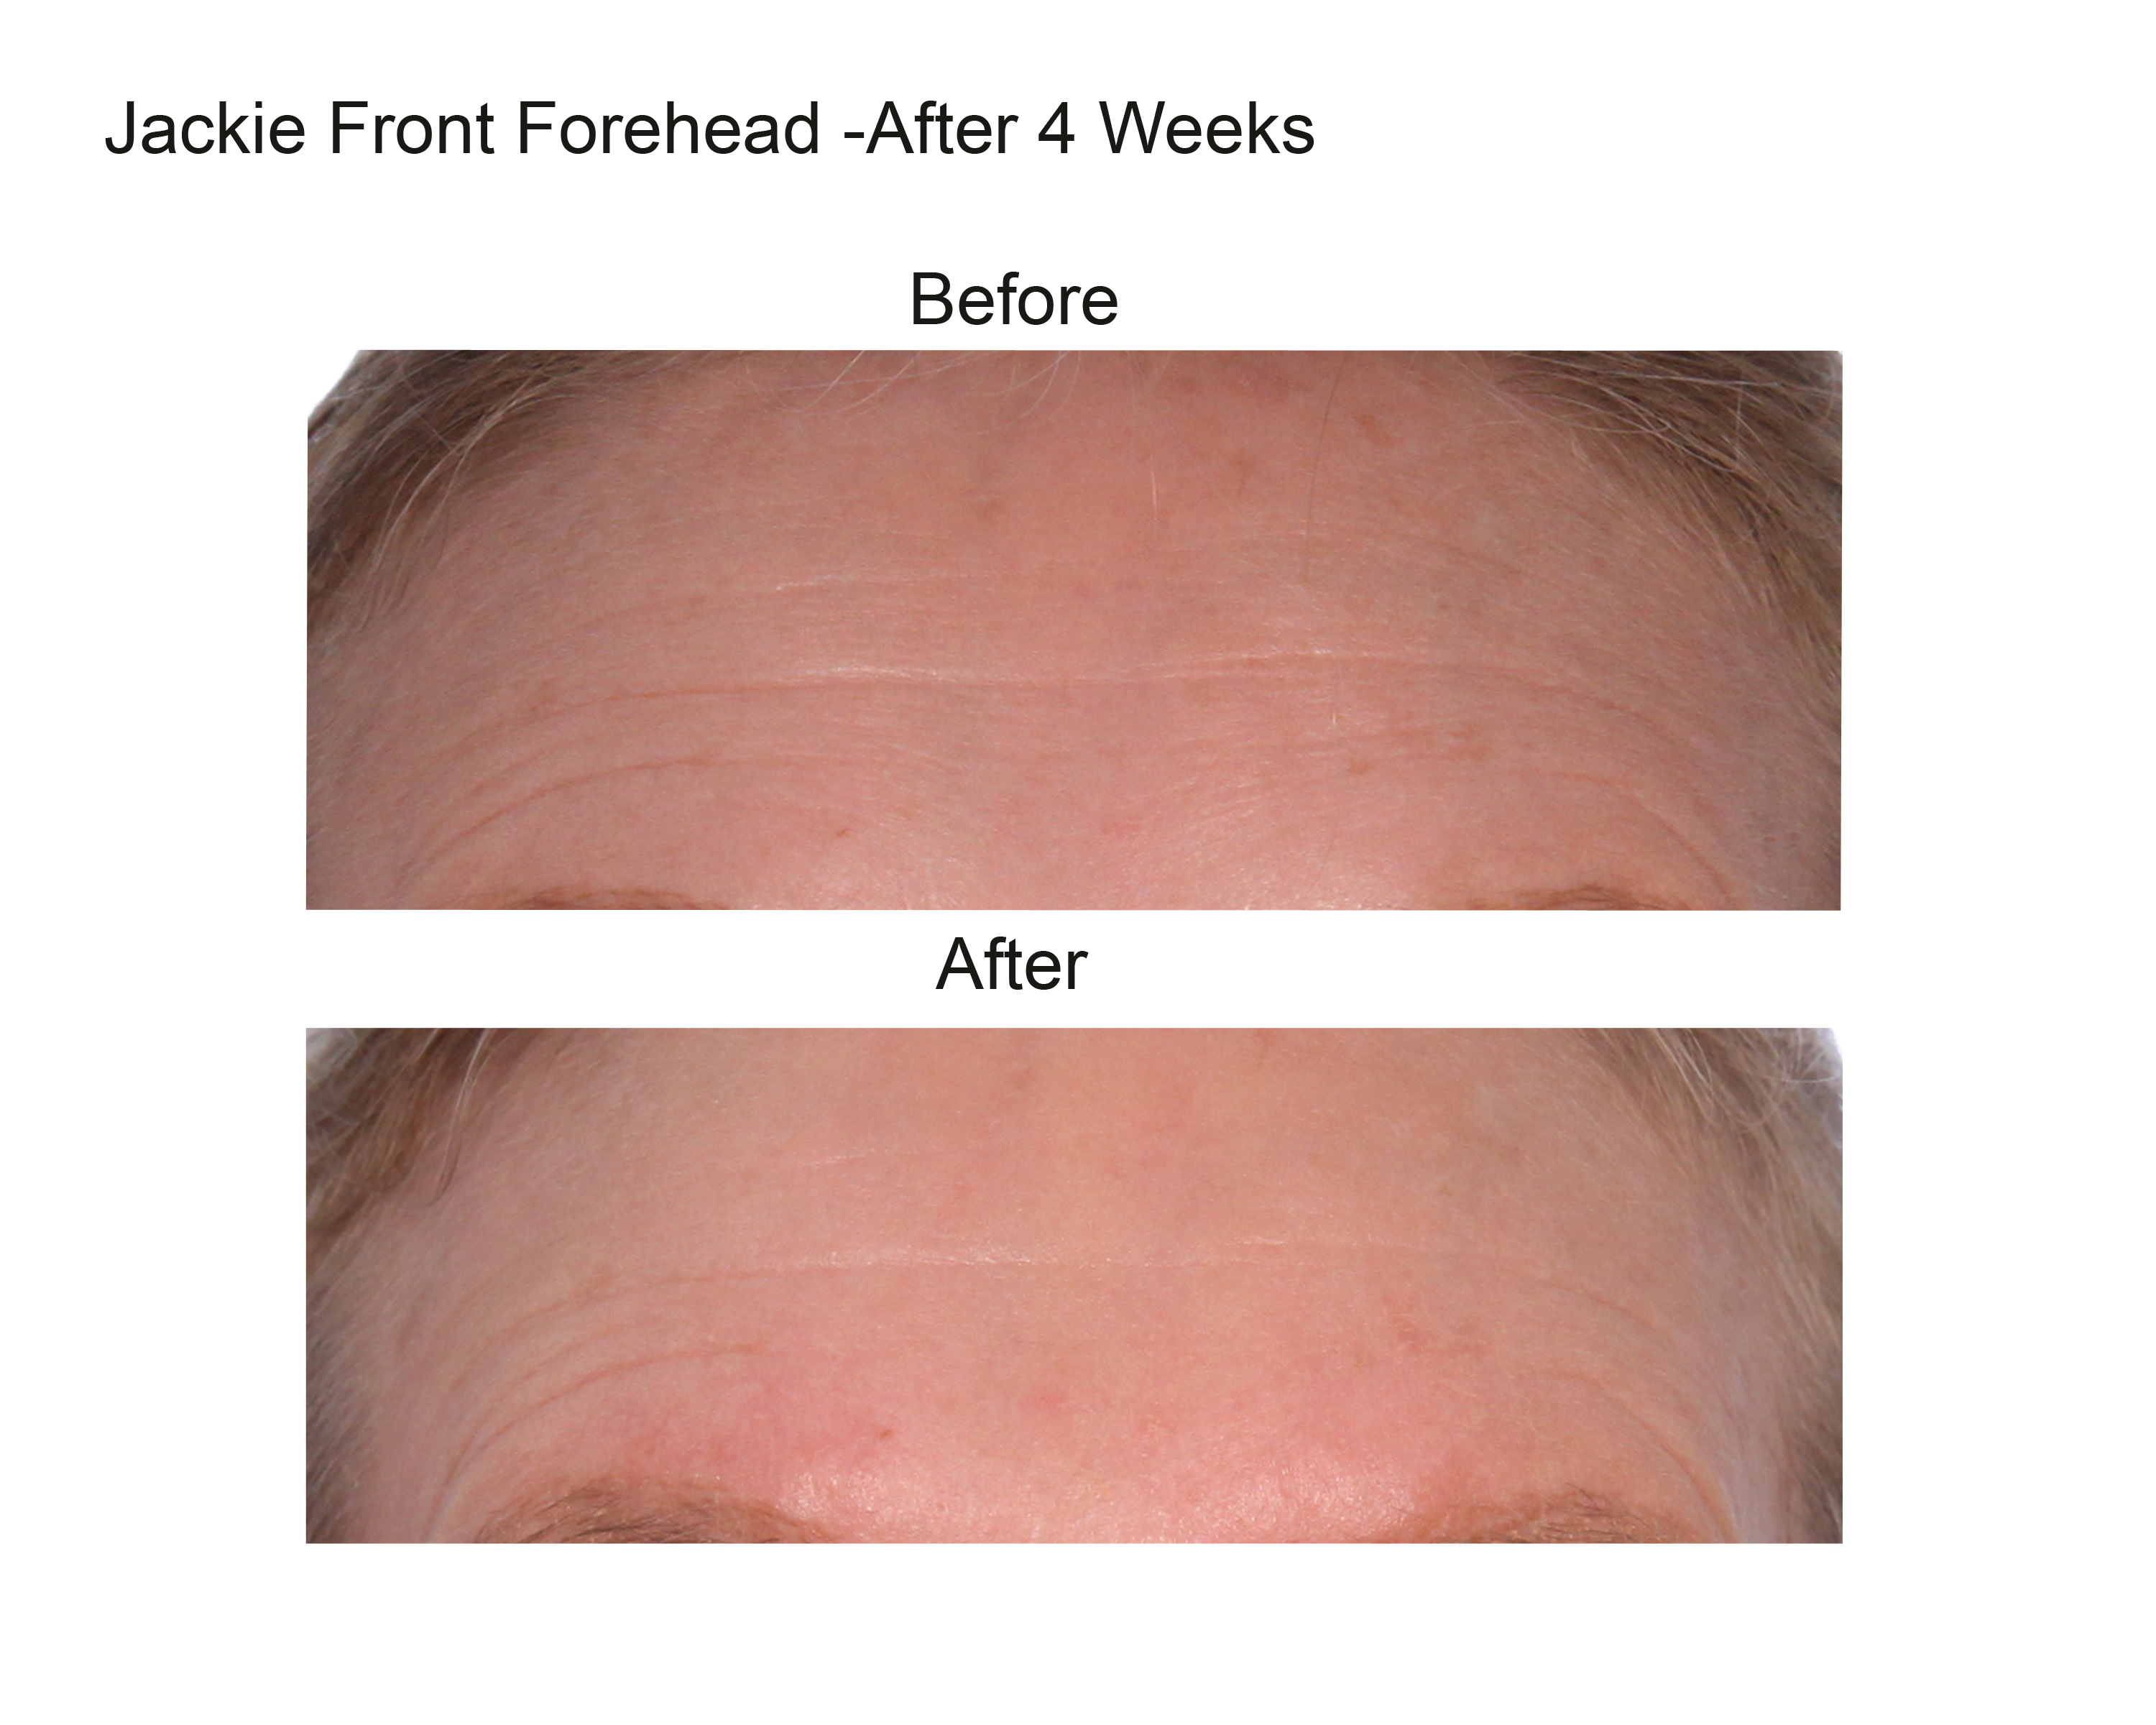 Jackie Front Forehead After 4 Weeks (1).